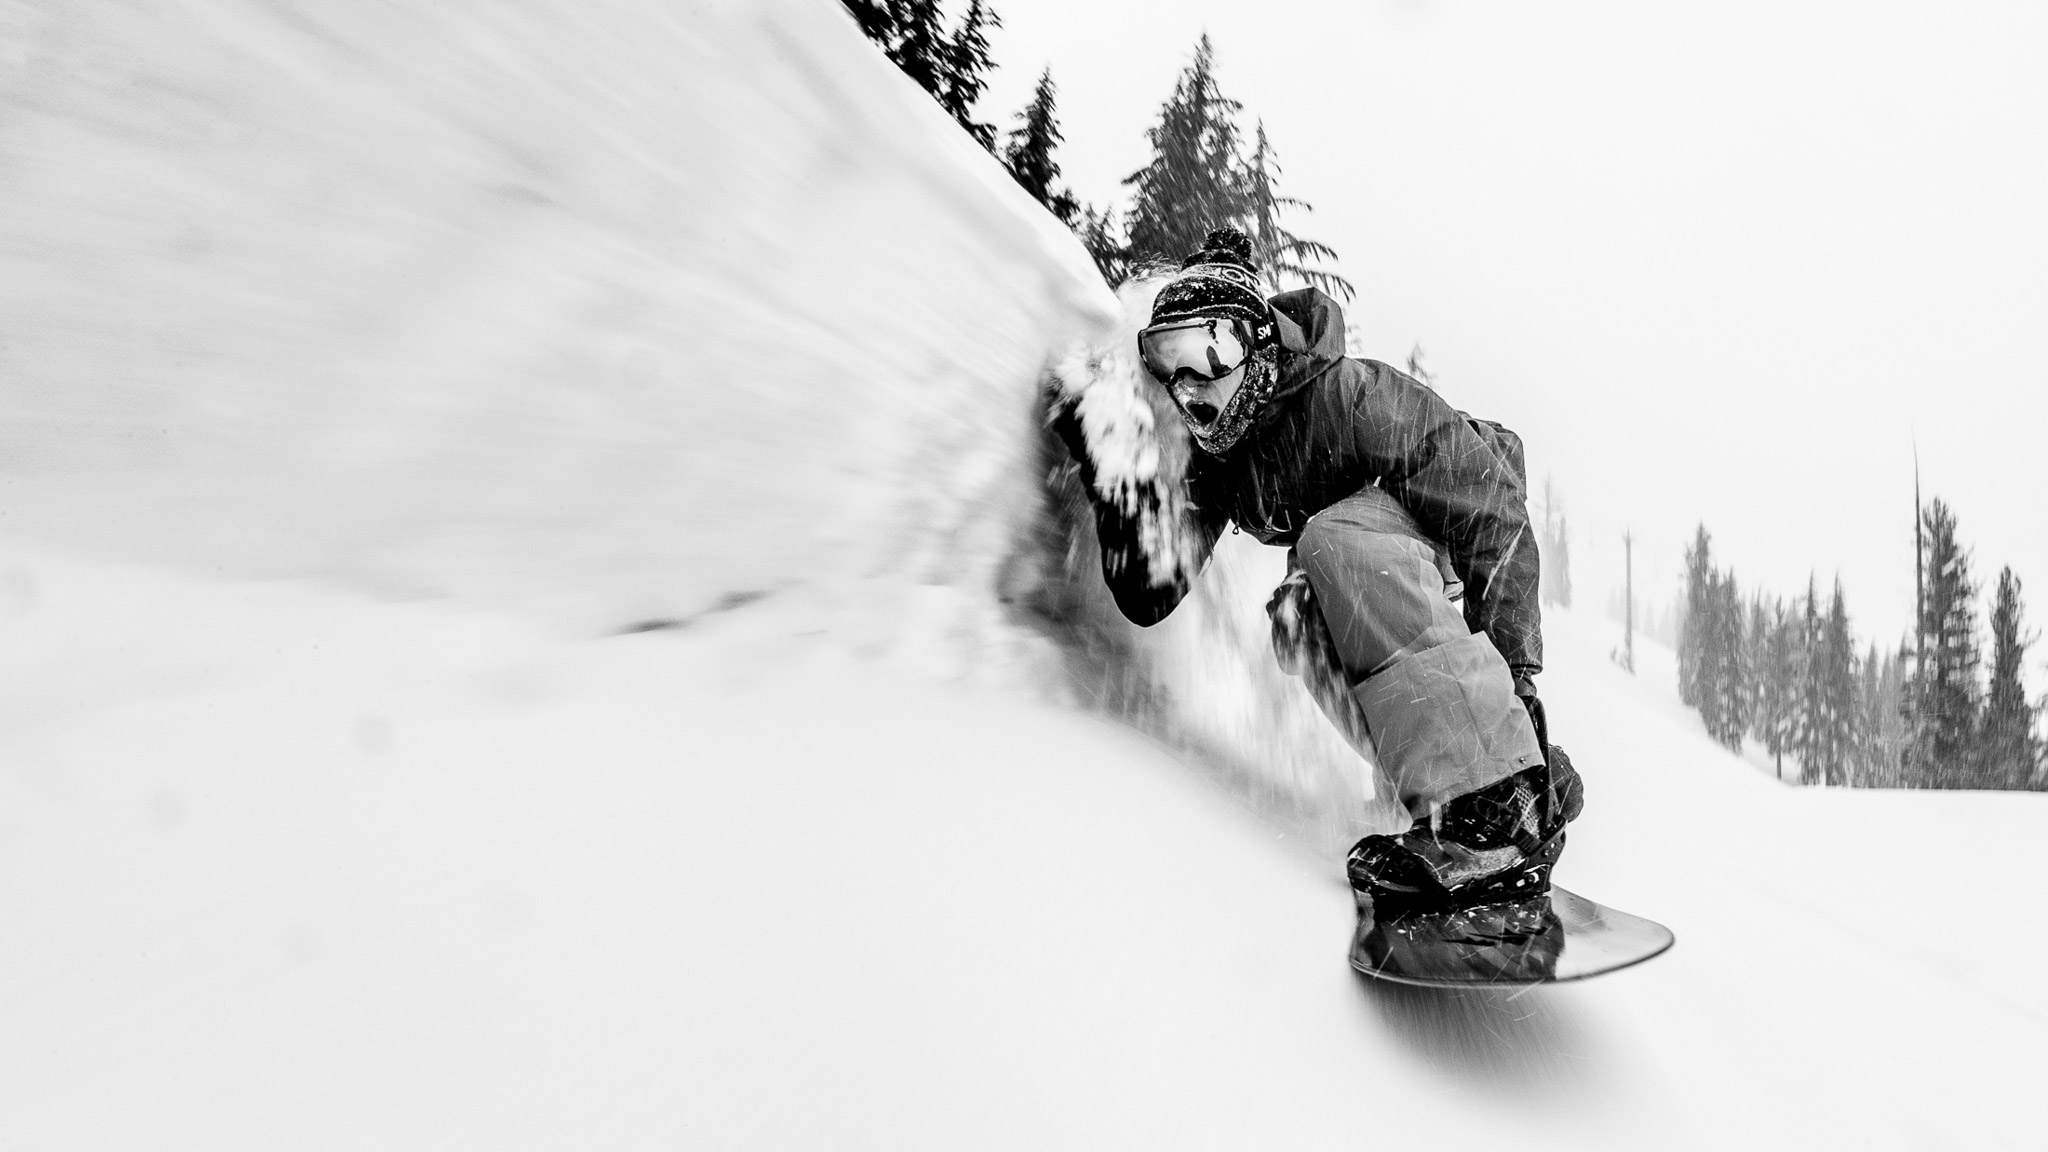 Jimmy Goodman, Mammoth Mountain, California